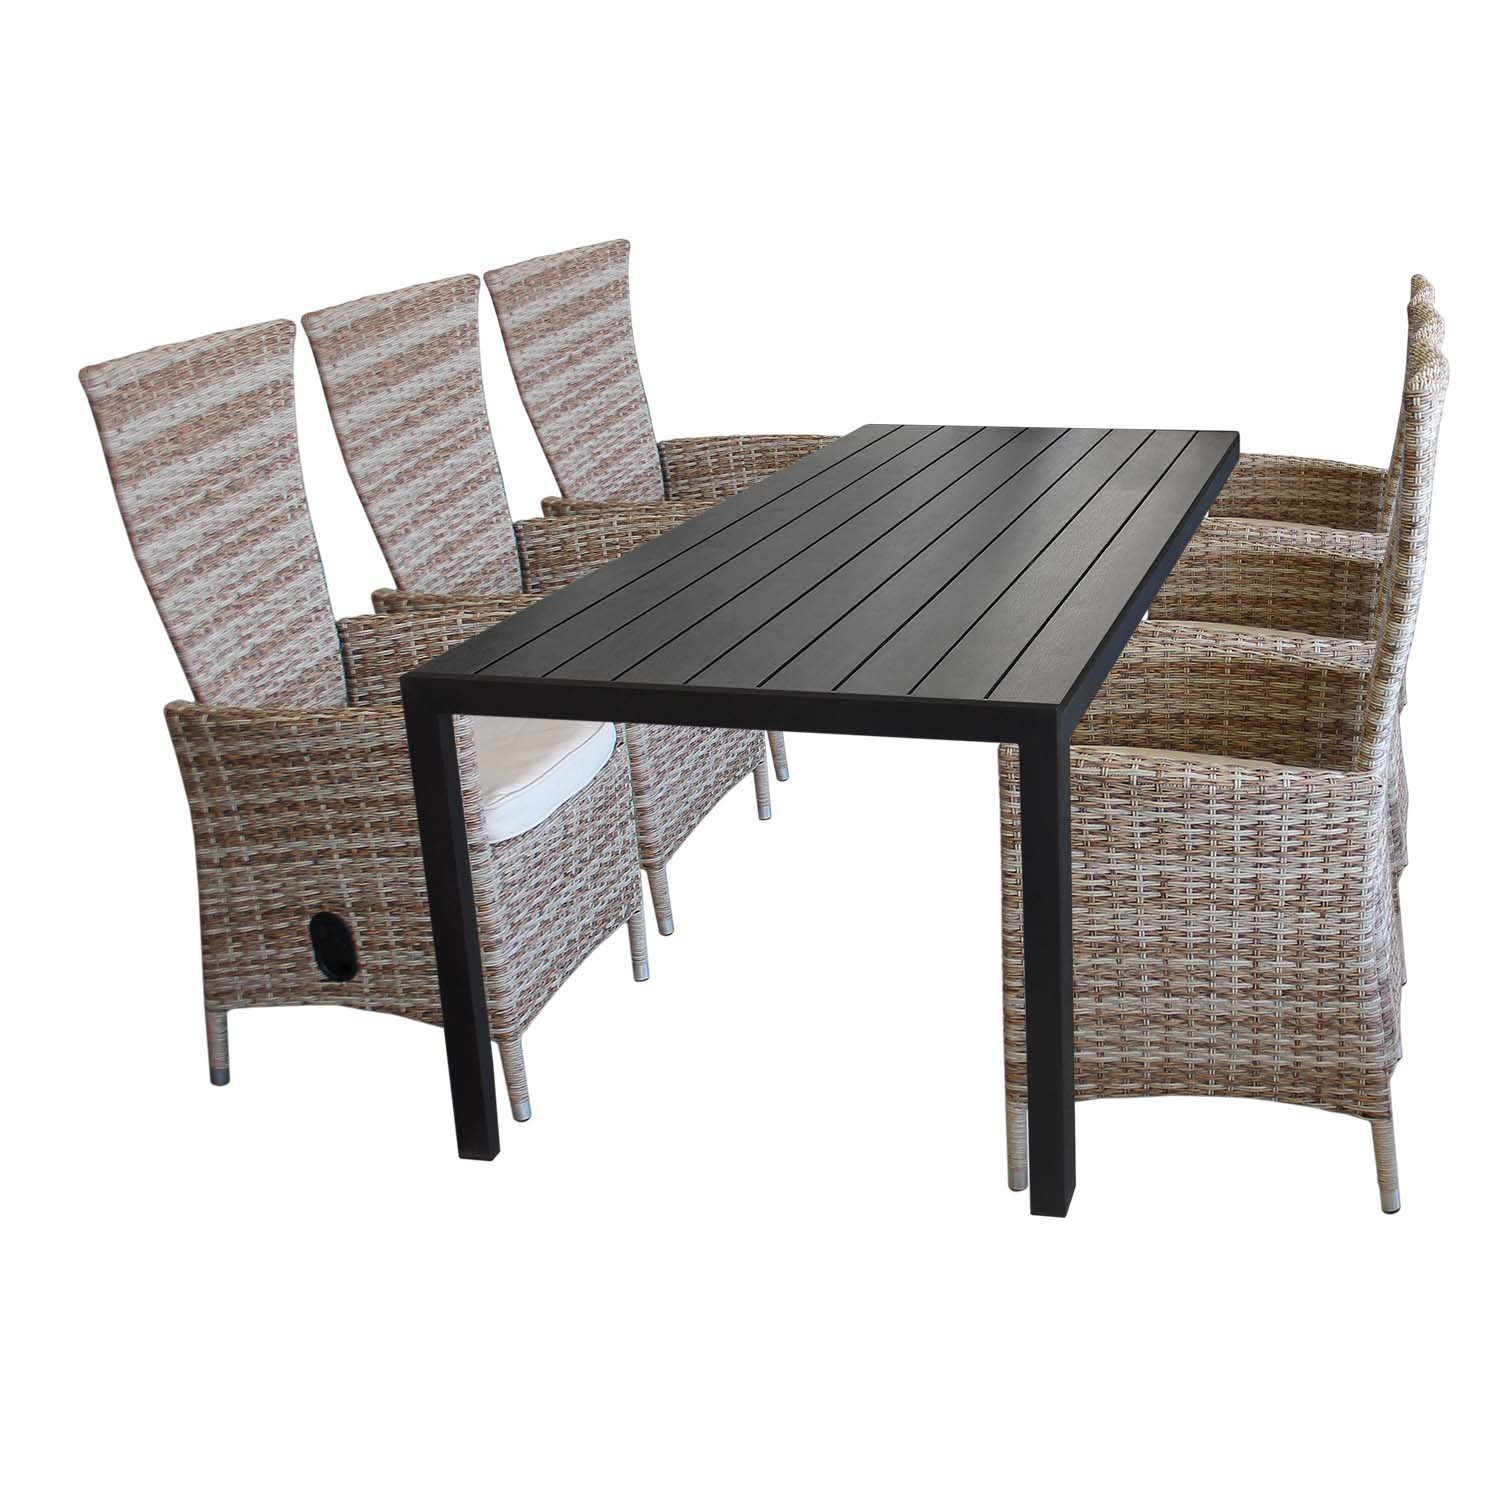 7tlg gartenm bel set aluminium polywood gartentisch 205x90cm 6x rattansessel polyrattan. Black Bedroom Furniture Sets. Home Design Ideas